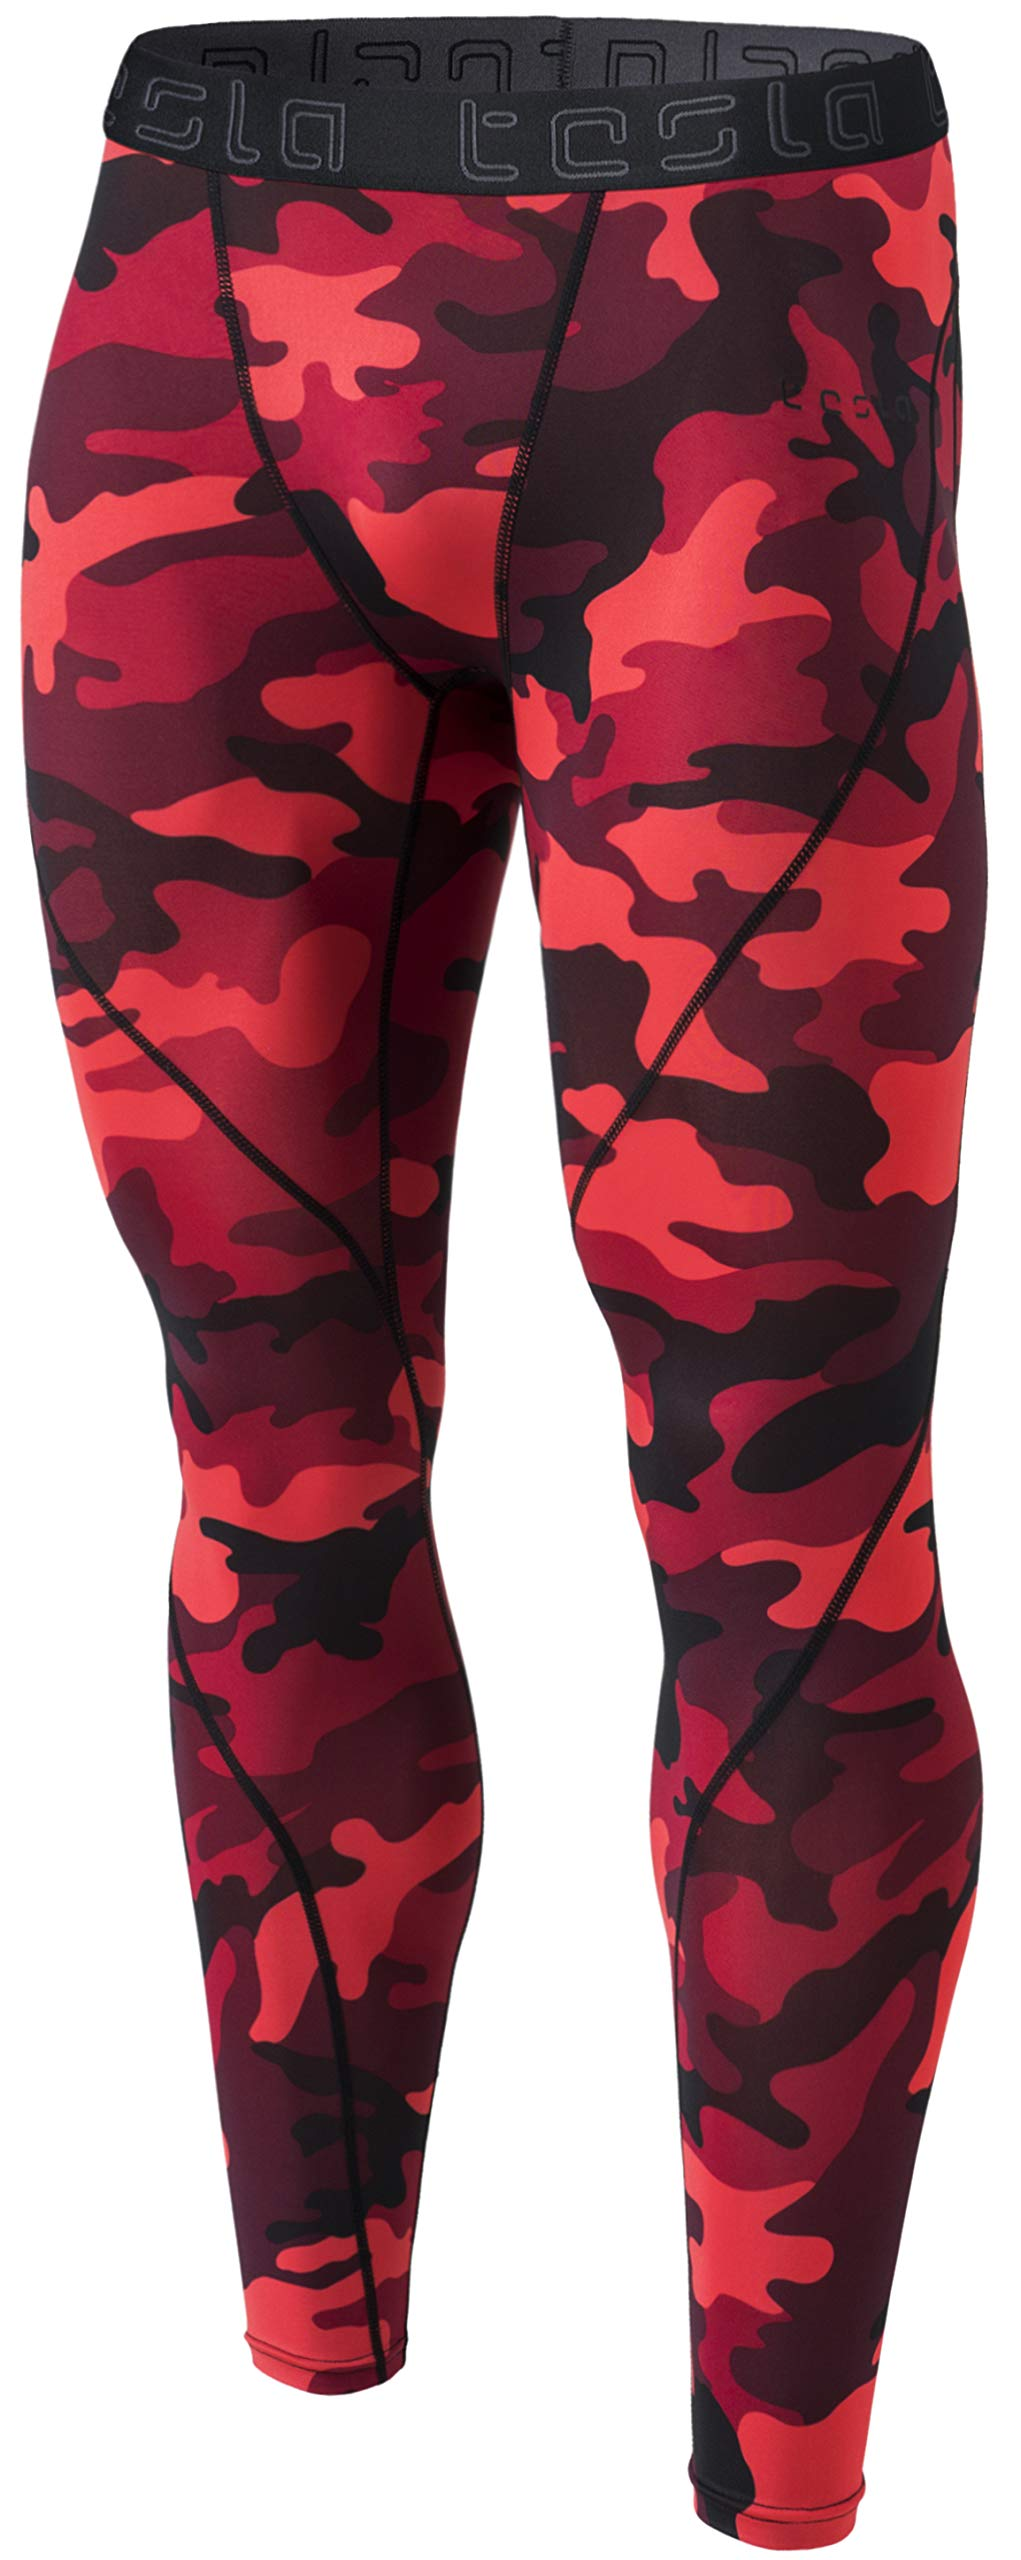 TSLA Men's Compression Pants Running Baselayer Cool Dry Sports Tights, Athletic(mup19) - Camo Red, Large by TSLA